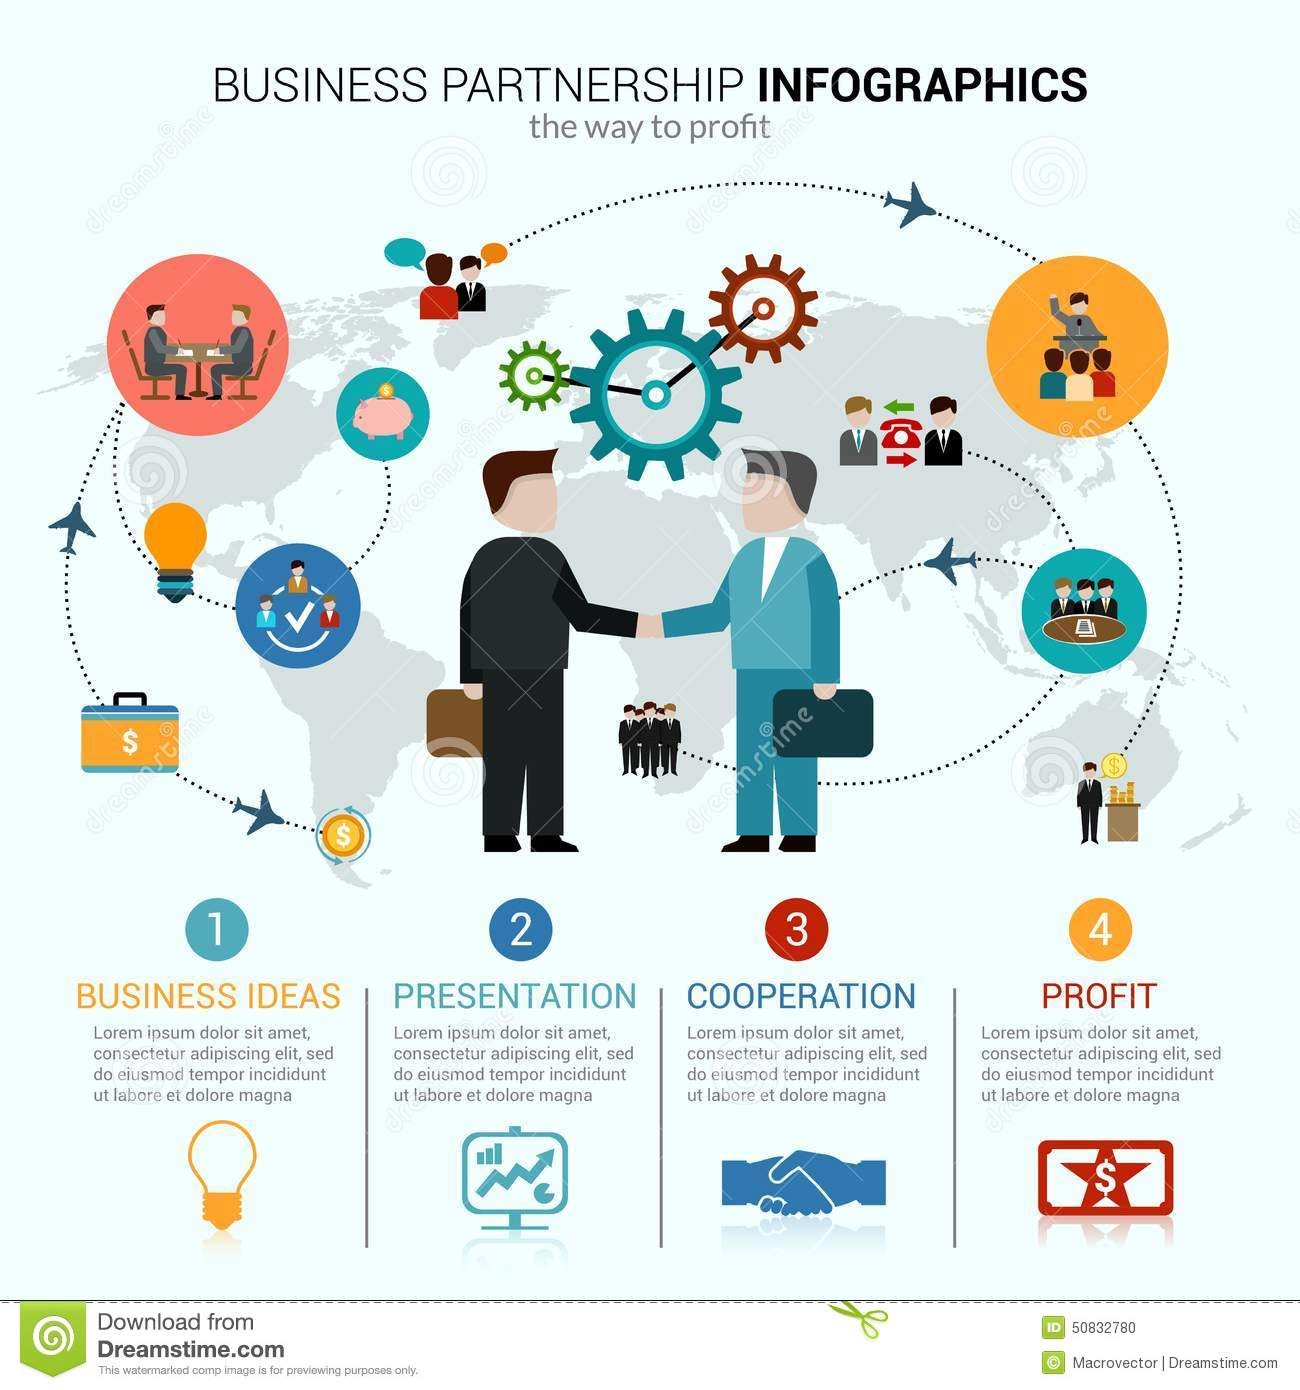 Business partnership infographics with idea presentation cooperation ...